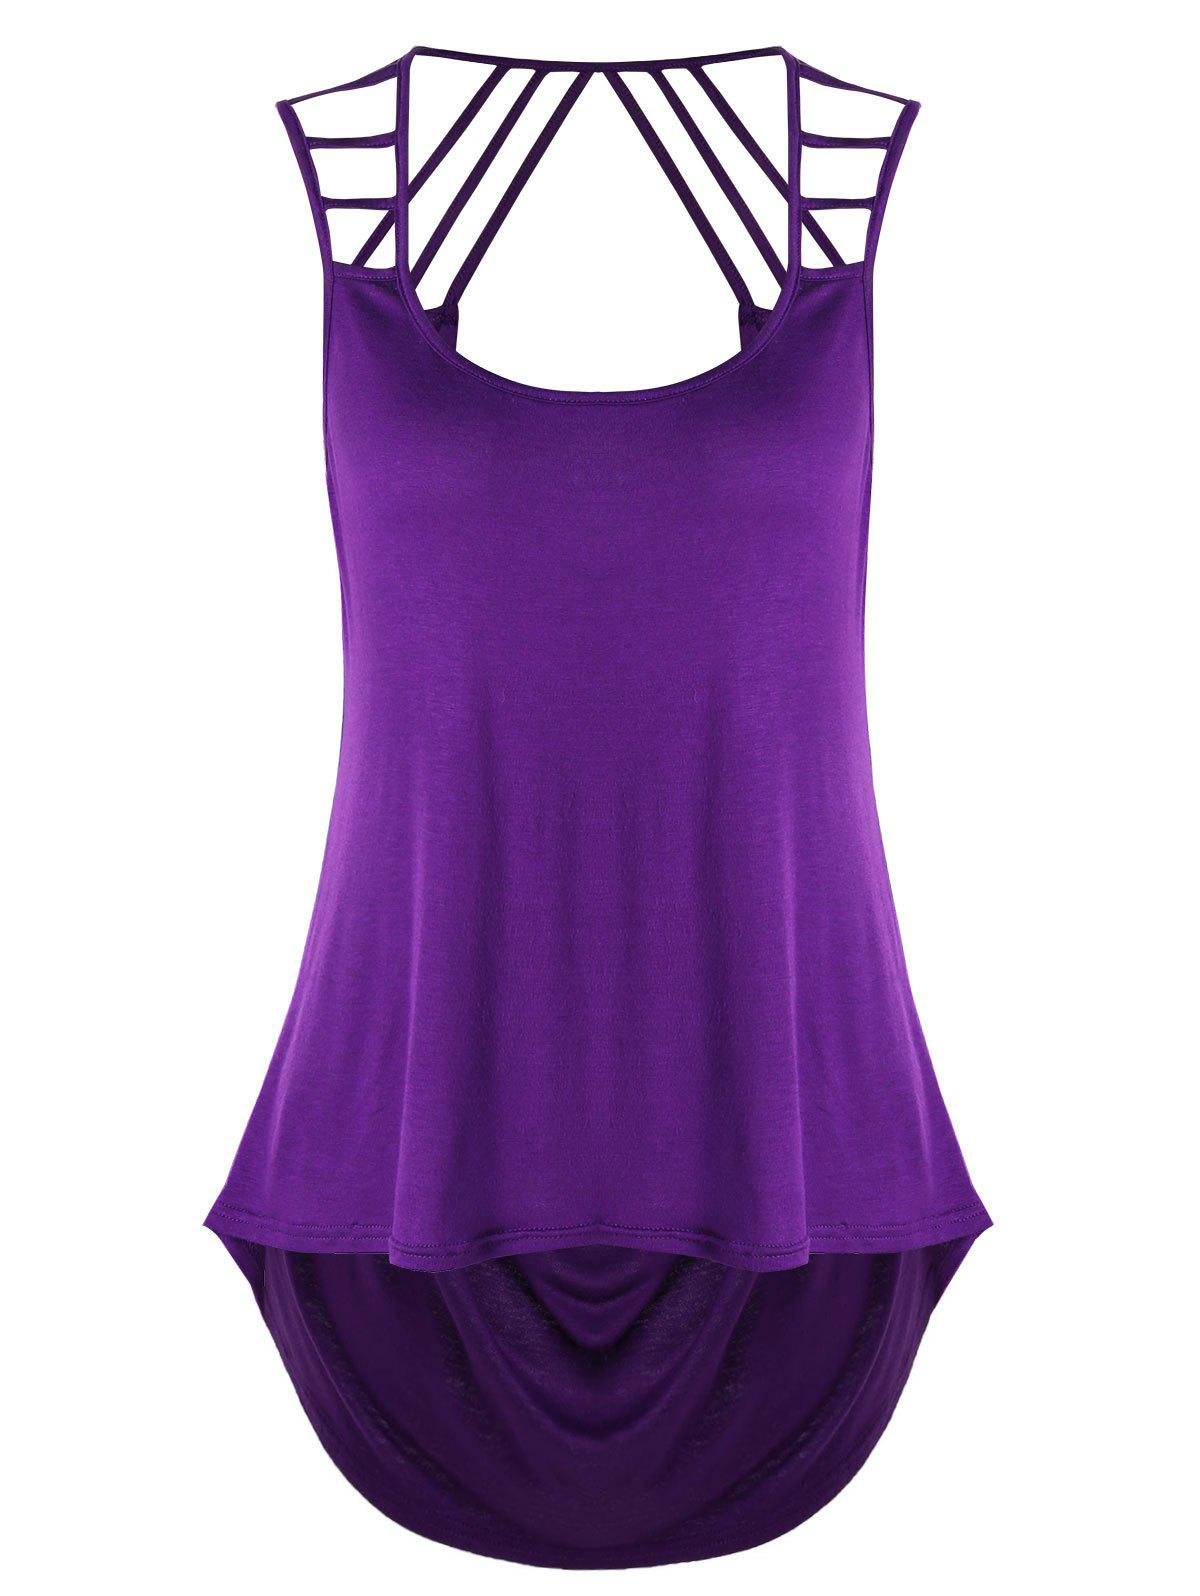 Cut Out Asymmetrical Tank Top - PURPLE XL